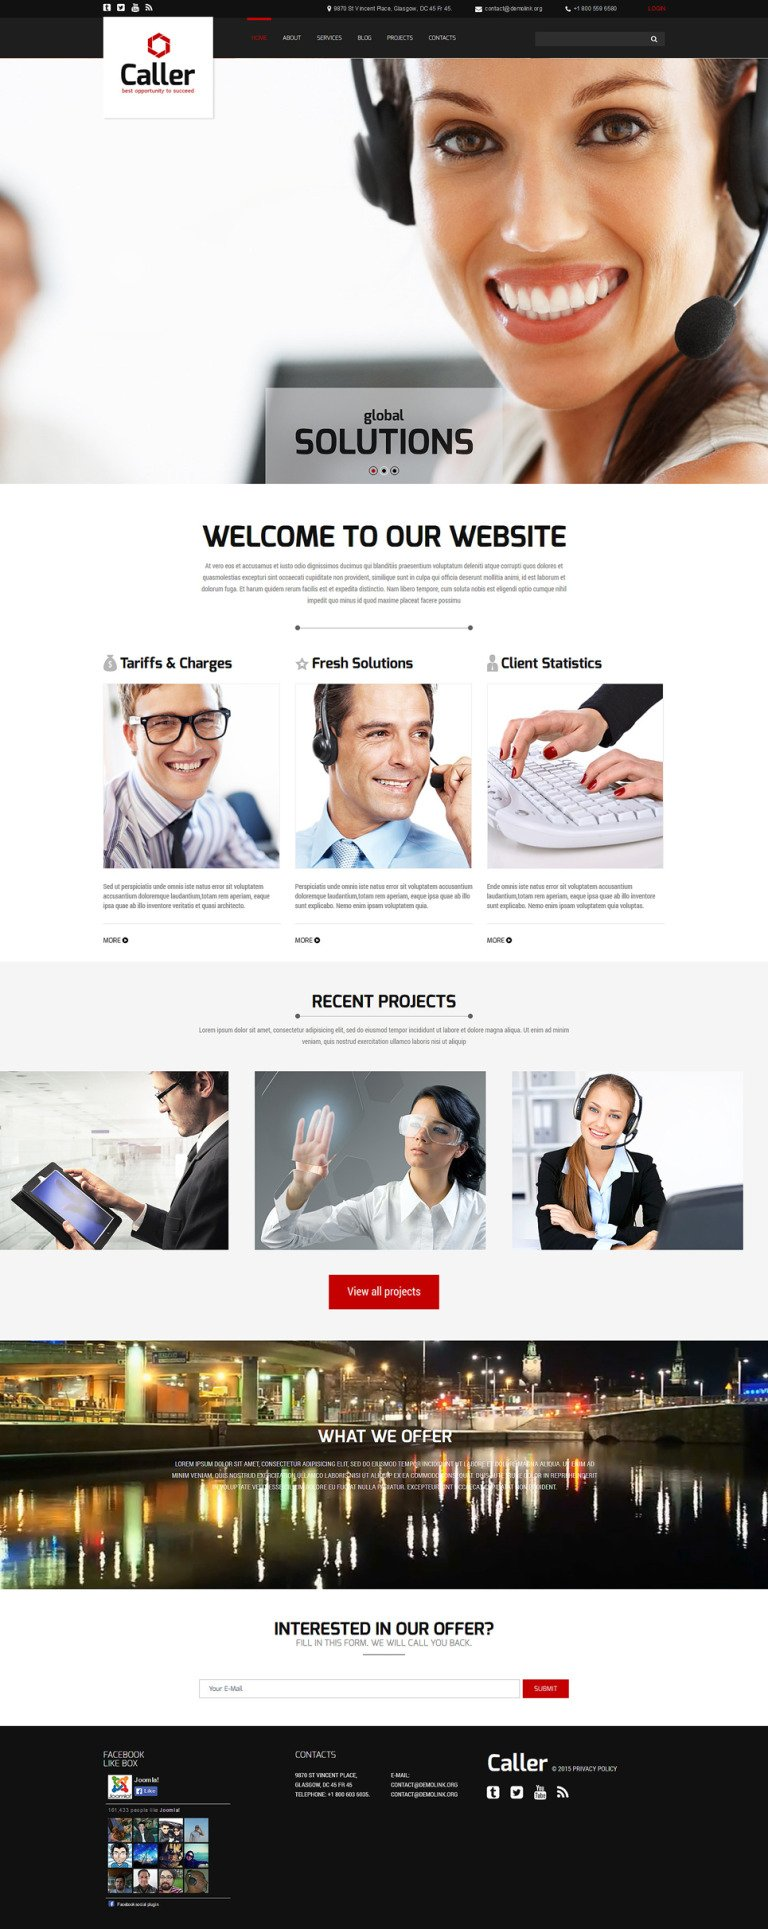 Call Center Joomla Template New Screenshots BIG